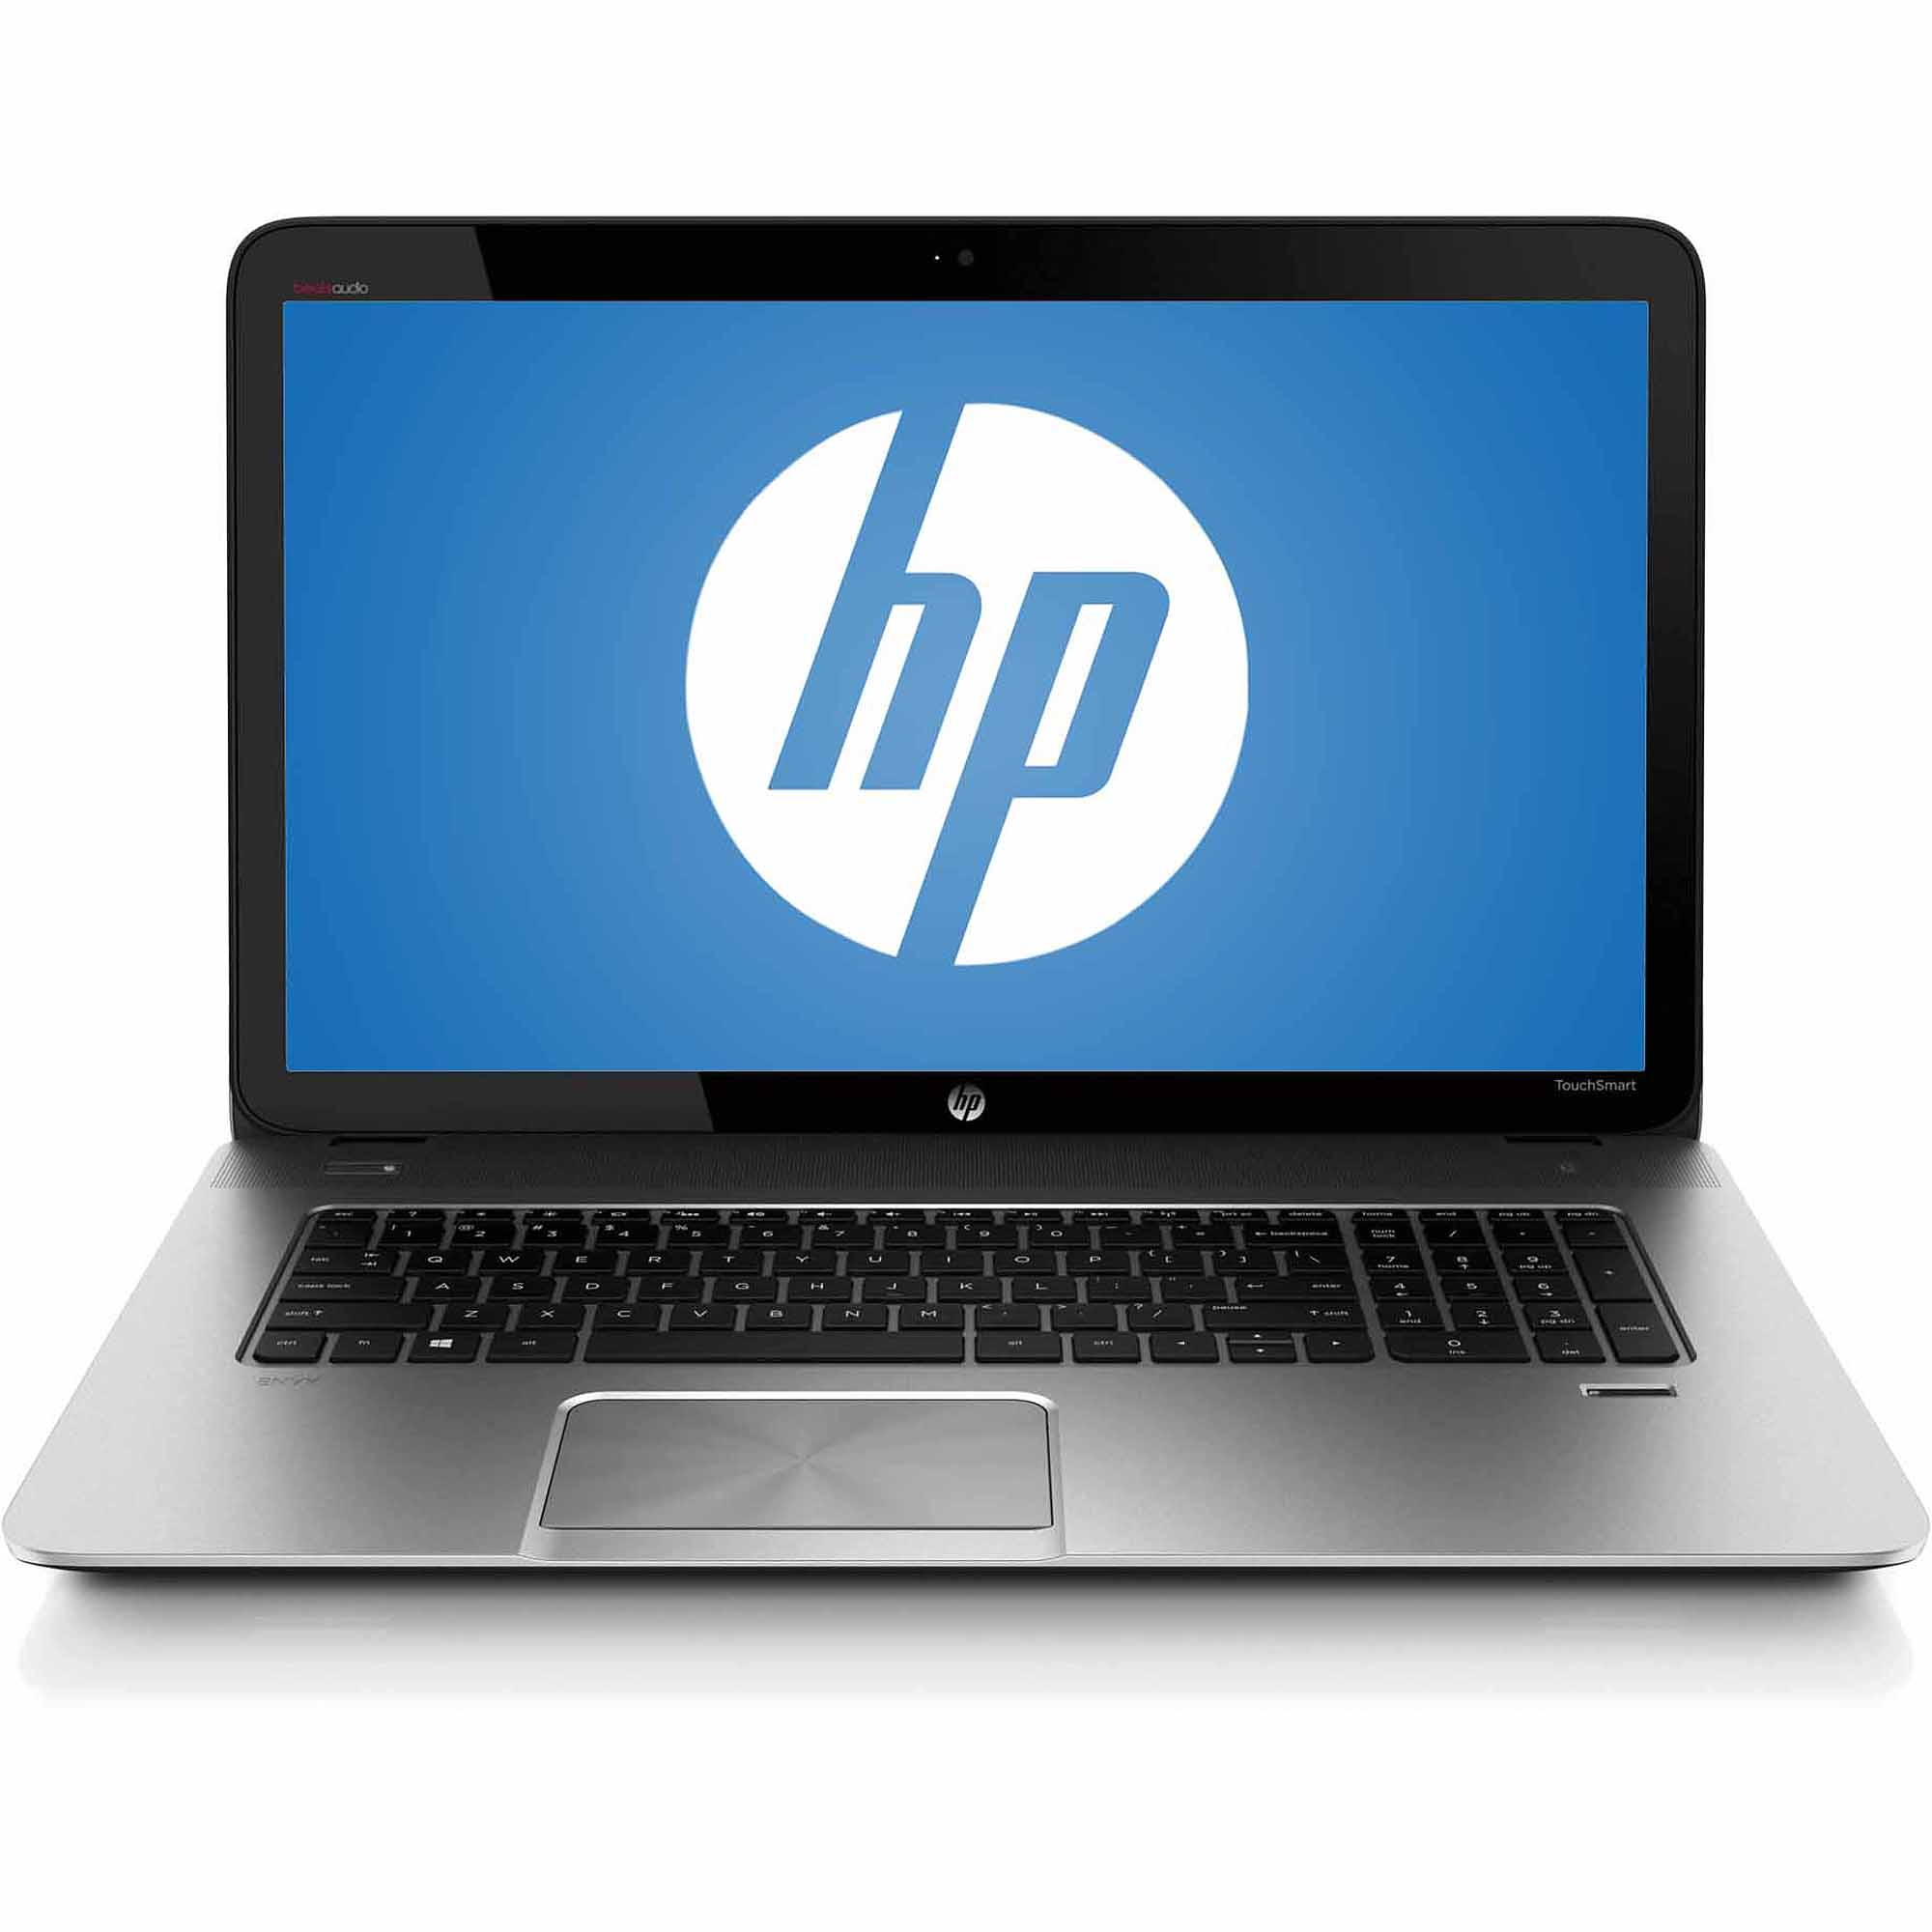 """HP Refurbished Silver 17.3"""" ENVY TouchSmart m7-j010dx Laptop PC with Intel Core i7-4700MQ Processor, 8GB Memory, Touchscreen, 1TB Hard Drive and Windows 8"""